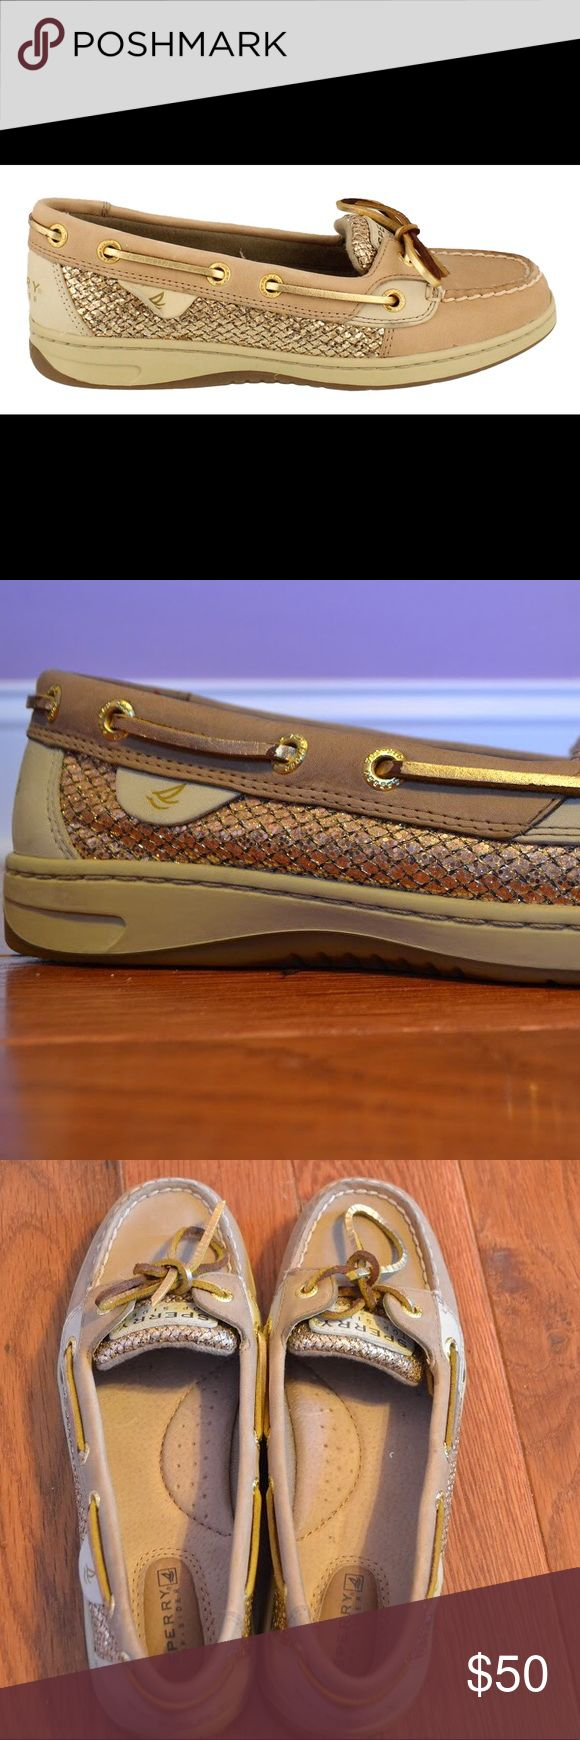 Angelfish Sperry Black Friday Sale! 👜🎉 🎈Black Friday Sale! Today only! Price will increase tomorrow🎈  Never worn sperry shoes! They compliment any outfit. Tan with gold details on each side. Size 7, NWOT, no flaws. Sperry Shoes Flats & Loafers